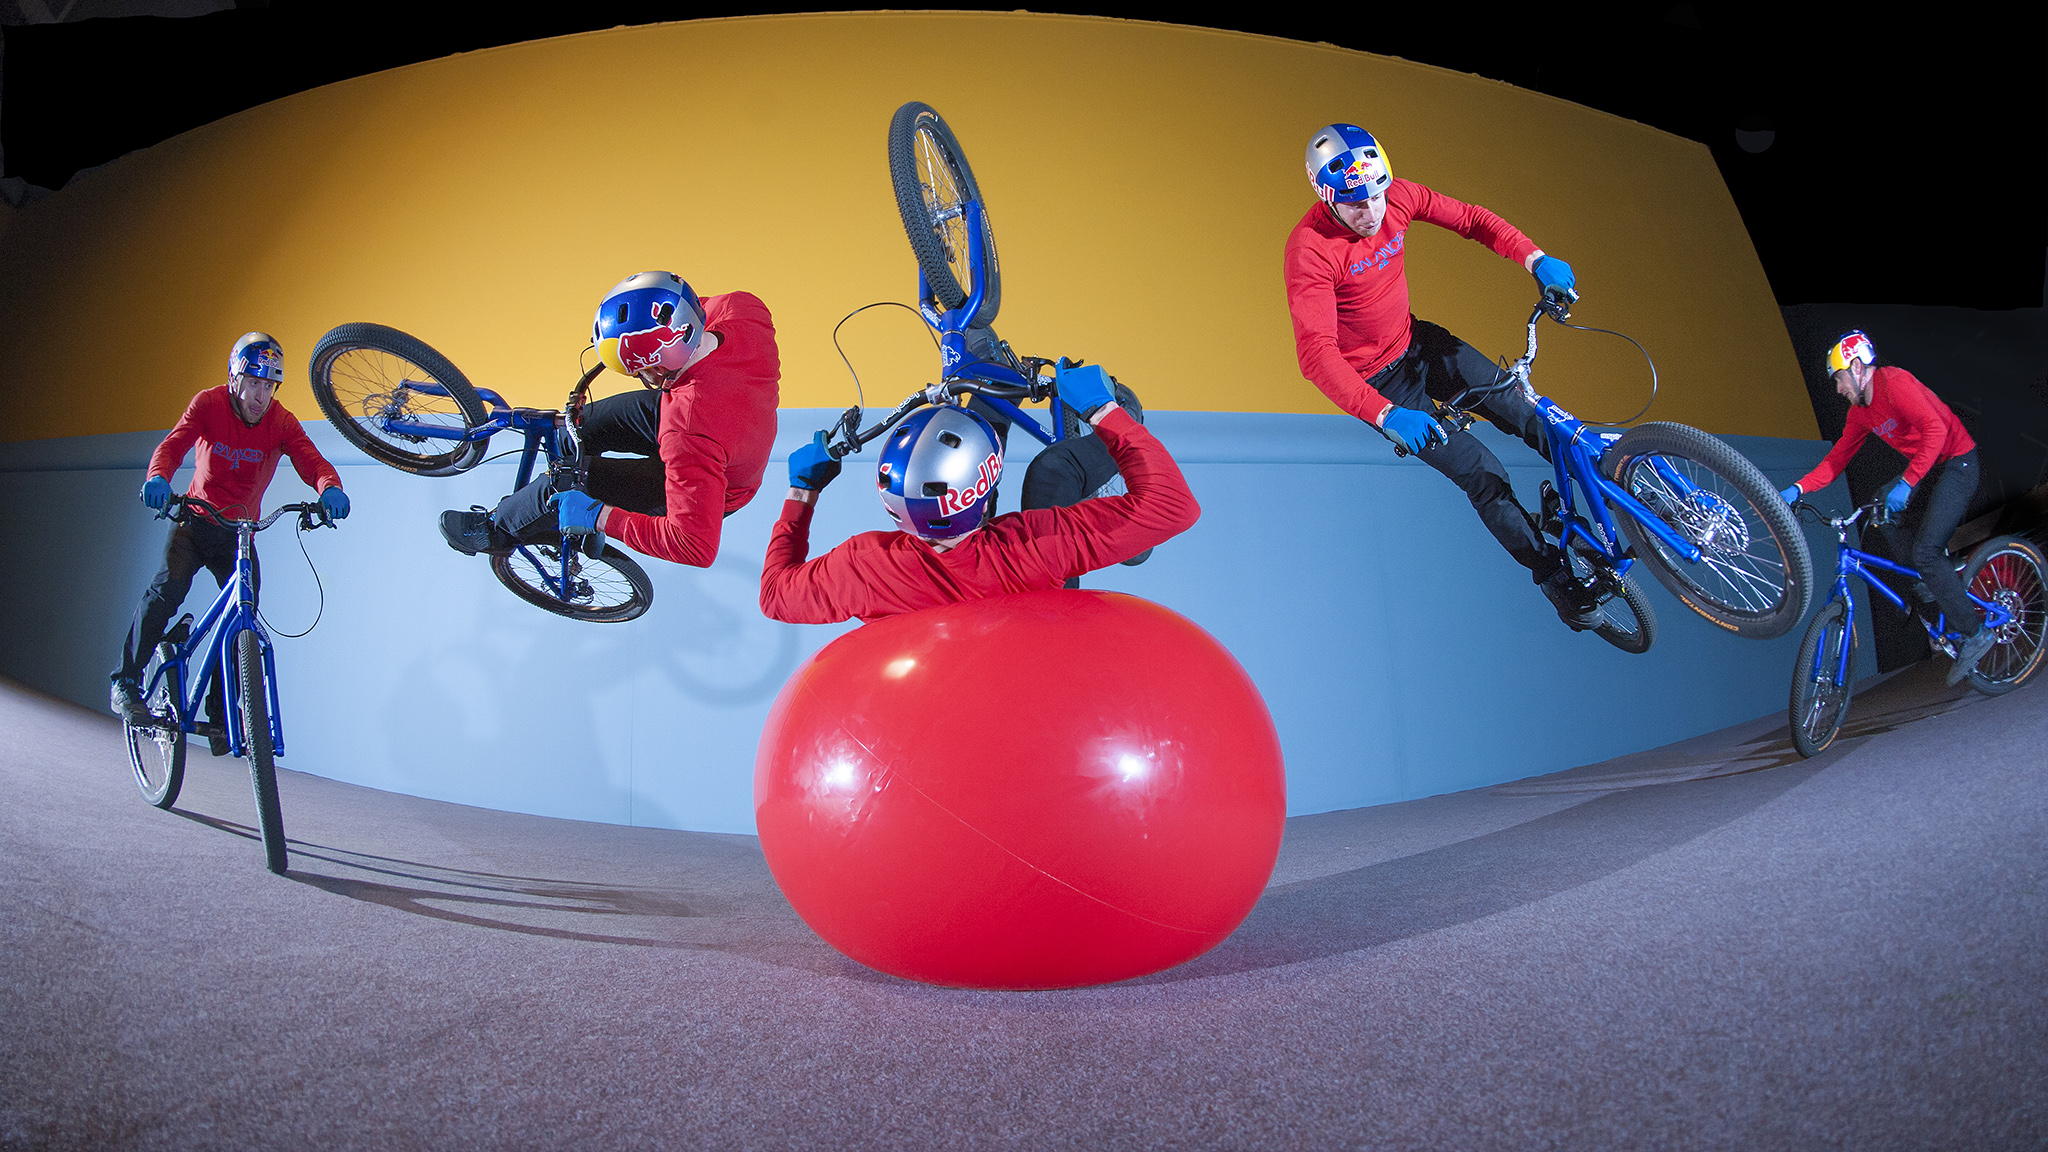 Danny MacAskill, flat ground barrel roll off of a giant rubber ball to fakie from Imaginate.